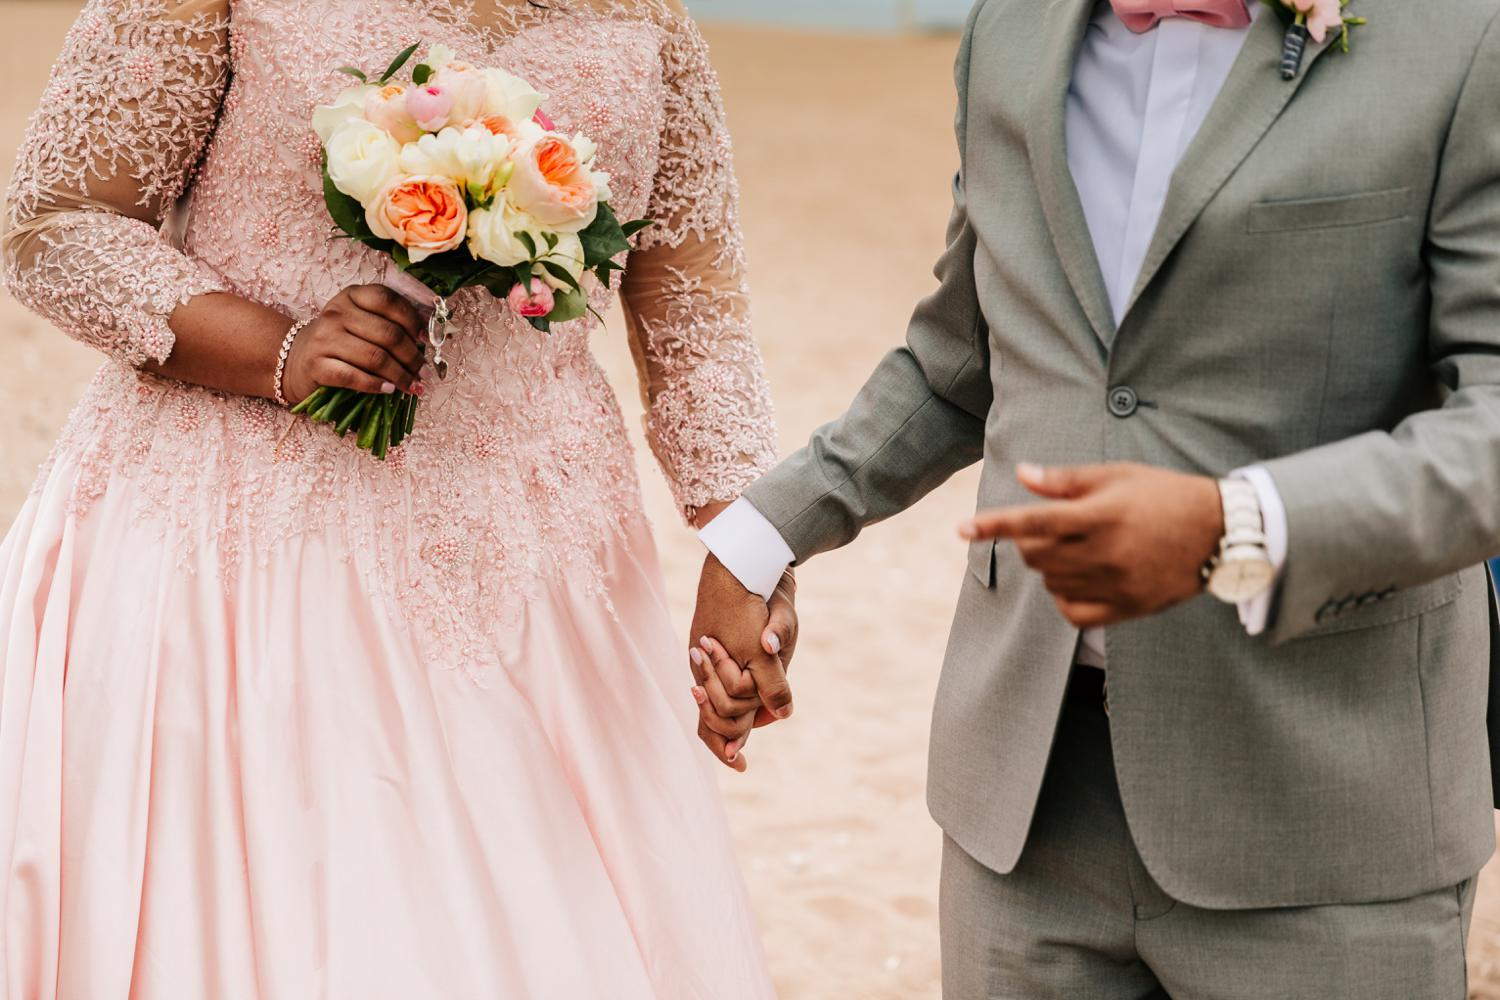 Bride and groom holding hands while bride holds rose bouquet